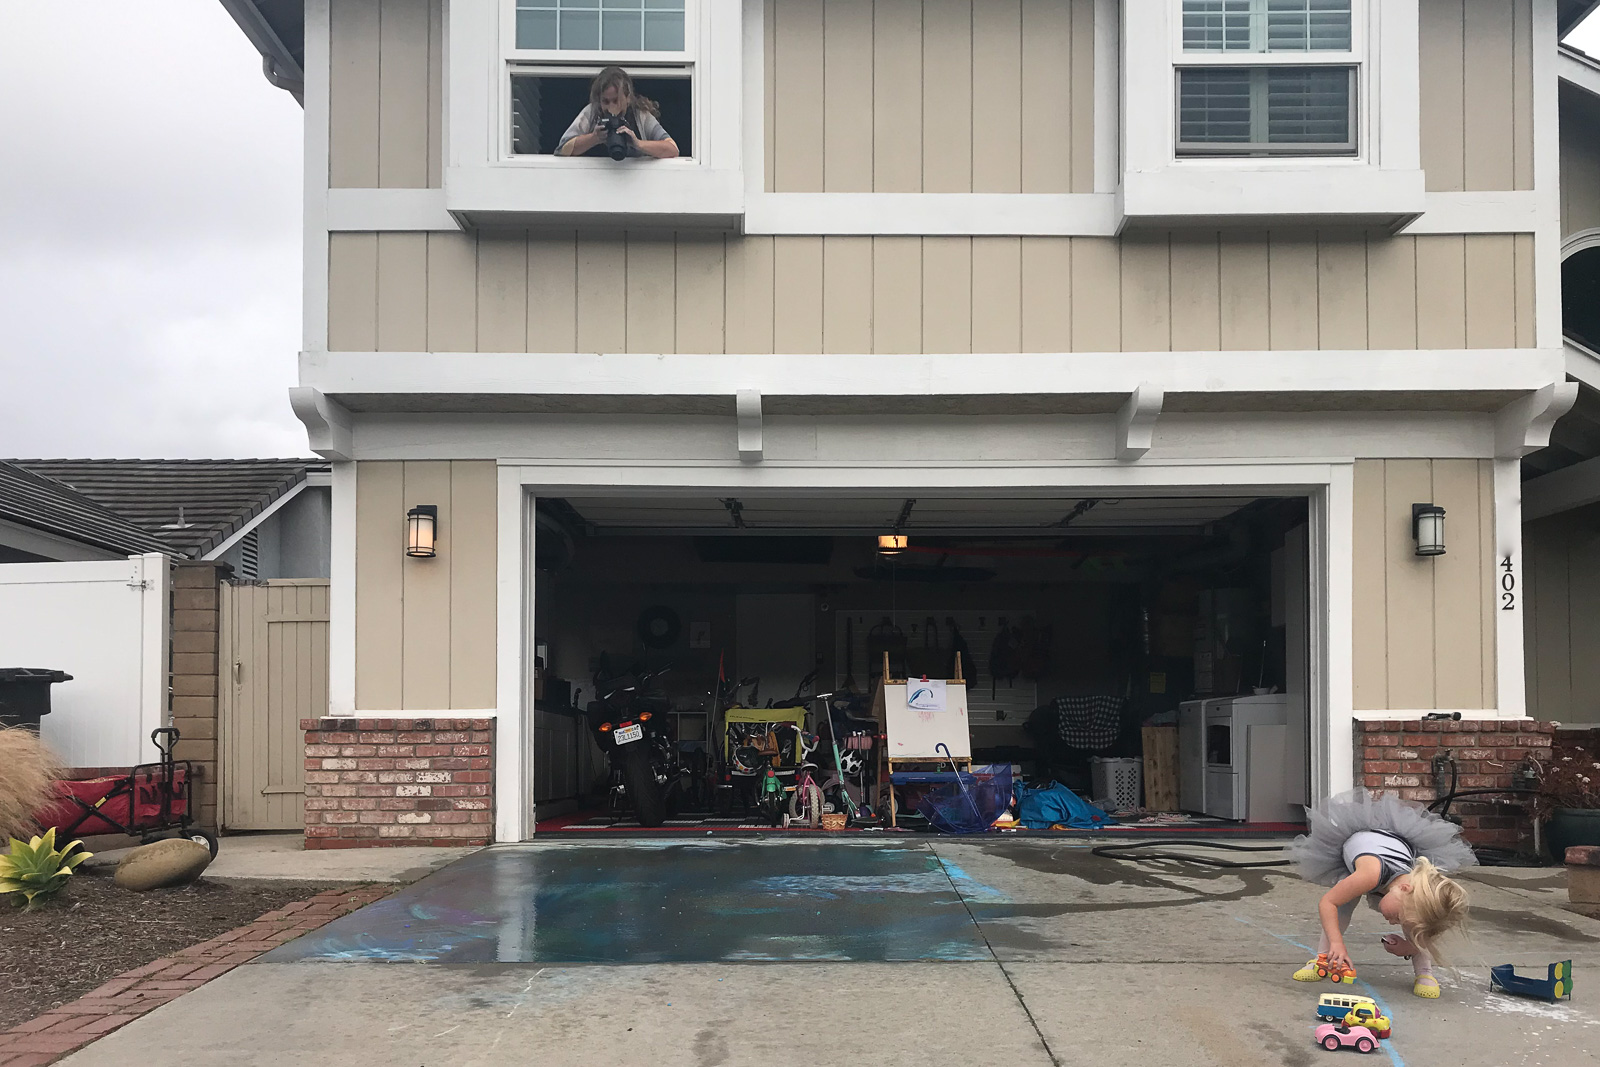 behind the scenes of mom photographing child playing on driveway karlee hooper